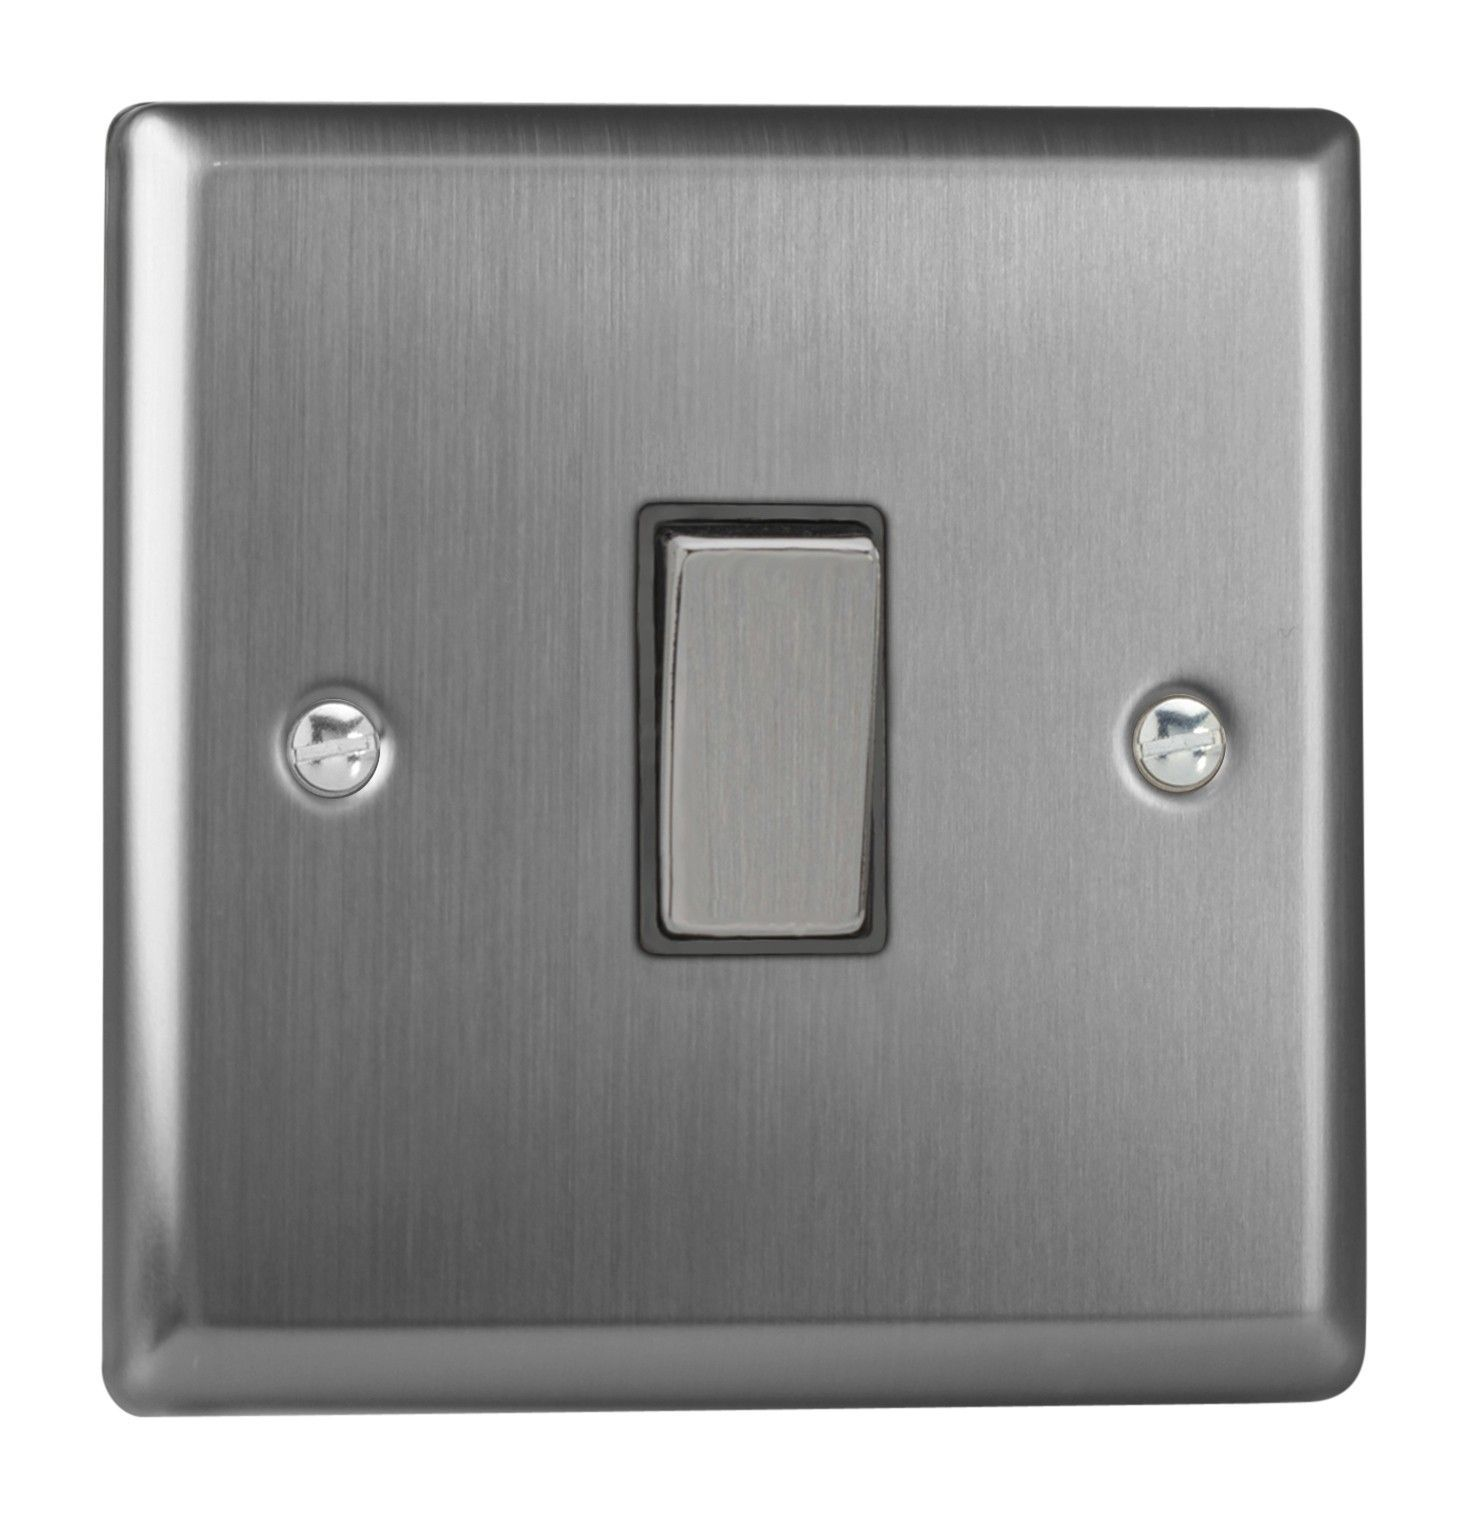 Varilight XT20D Classic Brushed Steel 1 Gang 20A Double Pole Switch